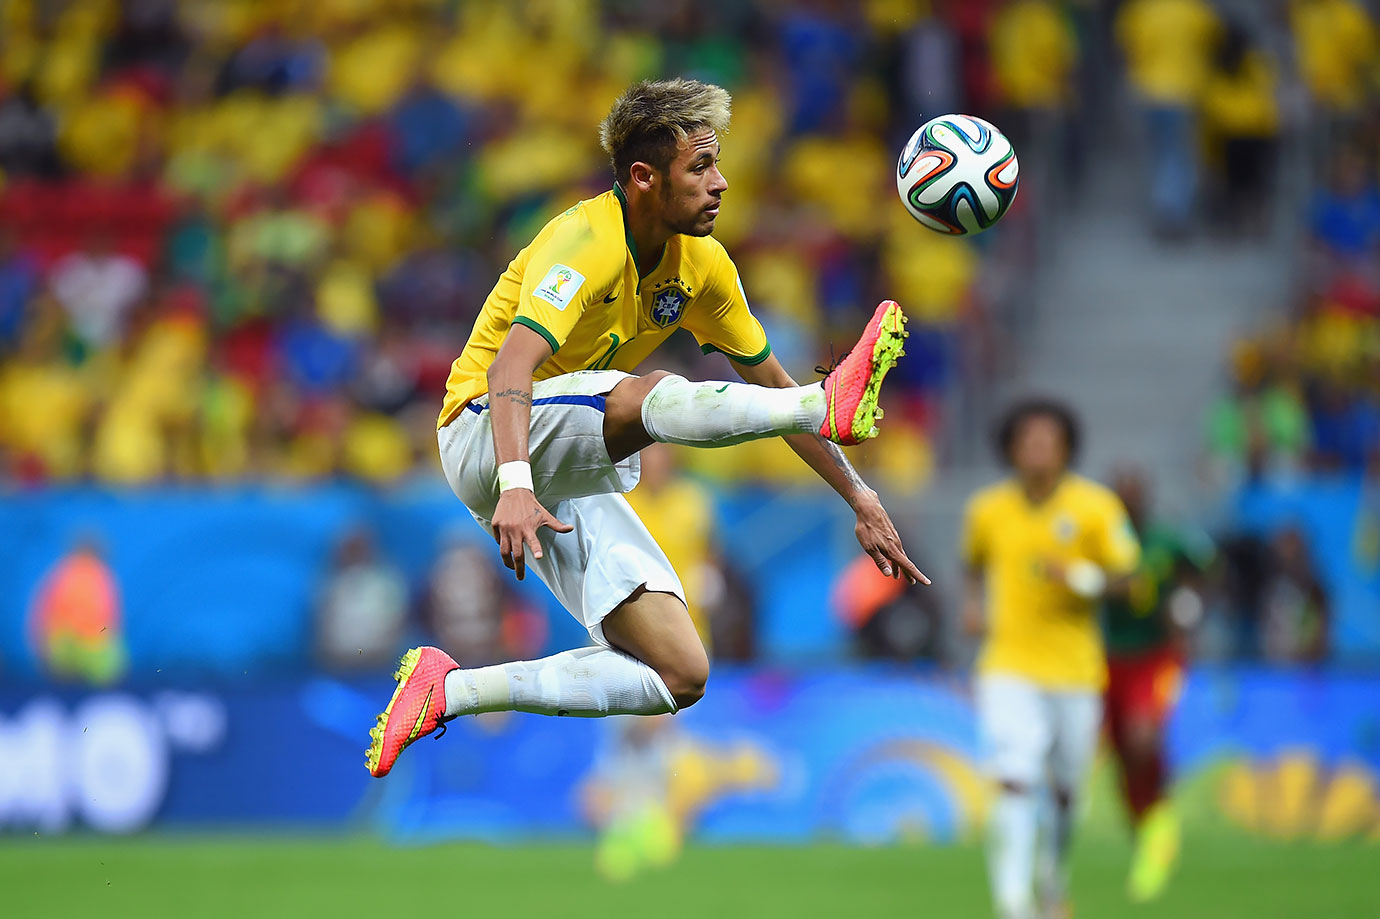 Neymar plays the ball during Brazil's World Cup match against Cameroon on June 23, 2014 at Estadio Nacional in Brasilia, Brazil.